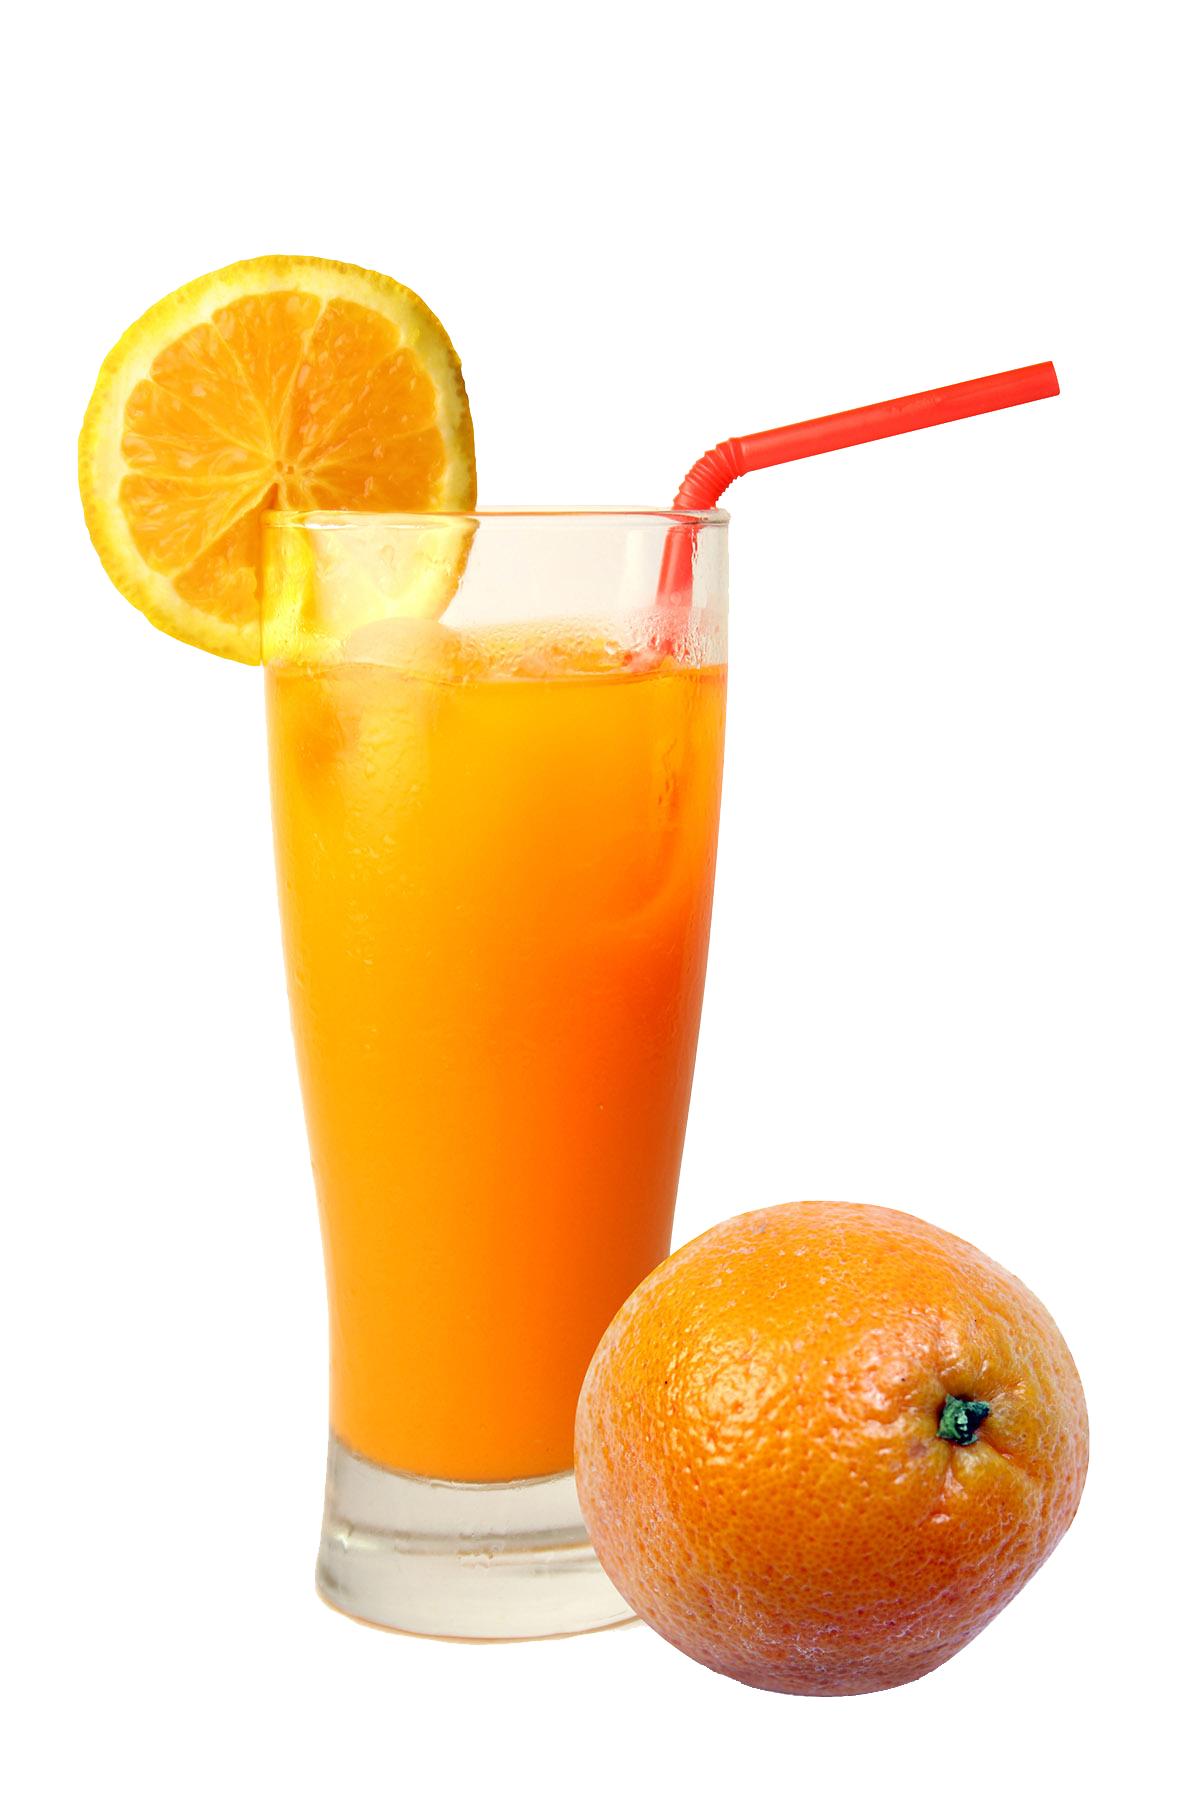 Fruit juice png. Transparent free images only